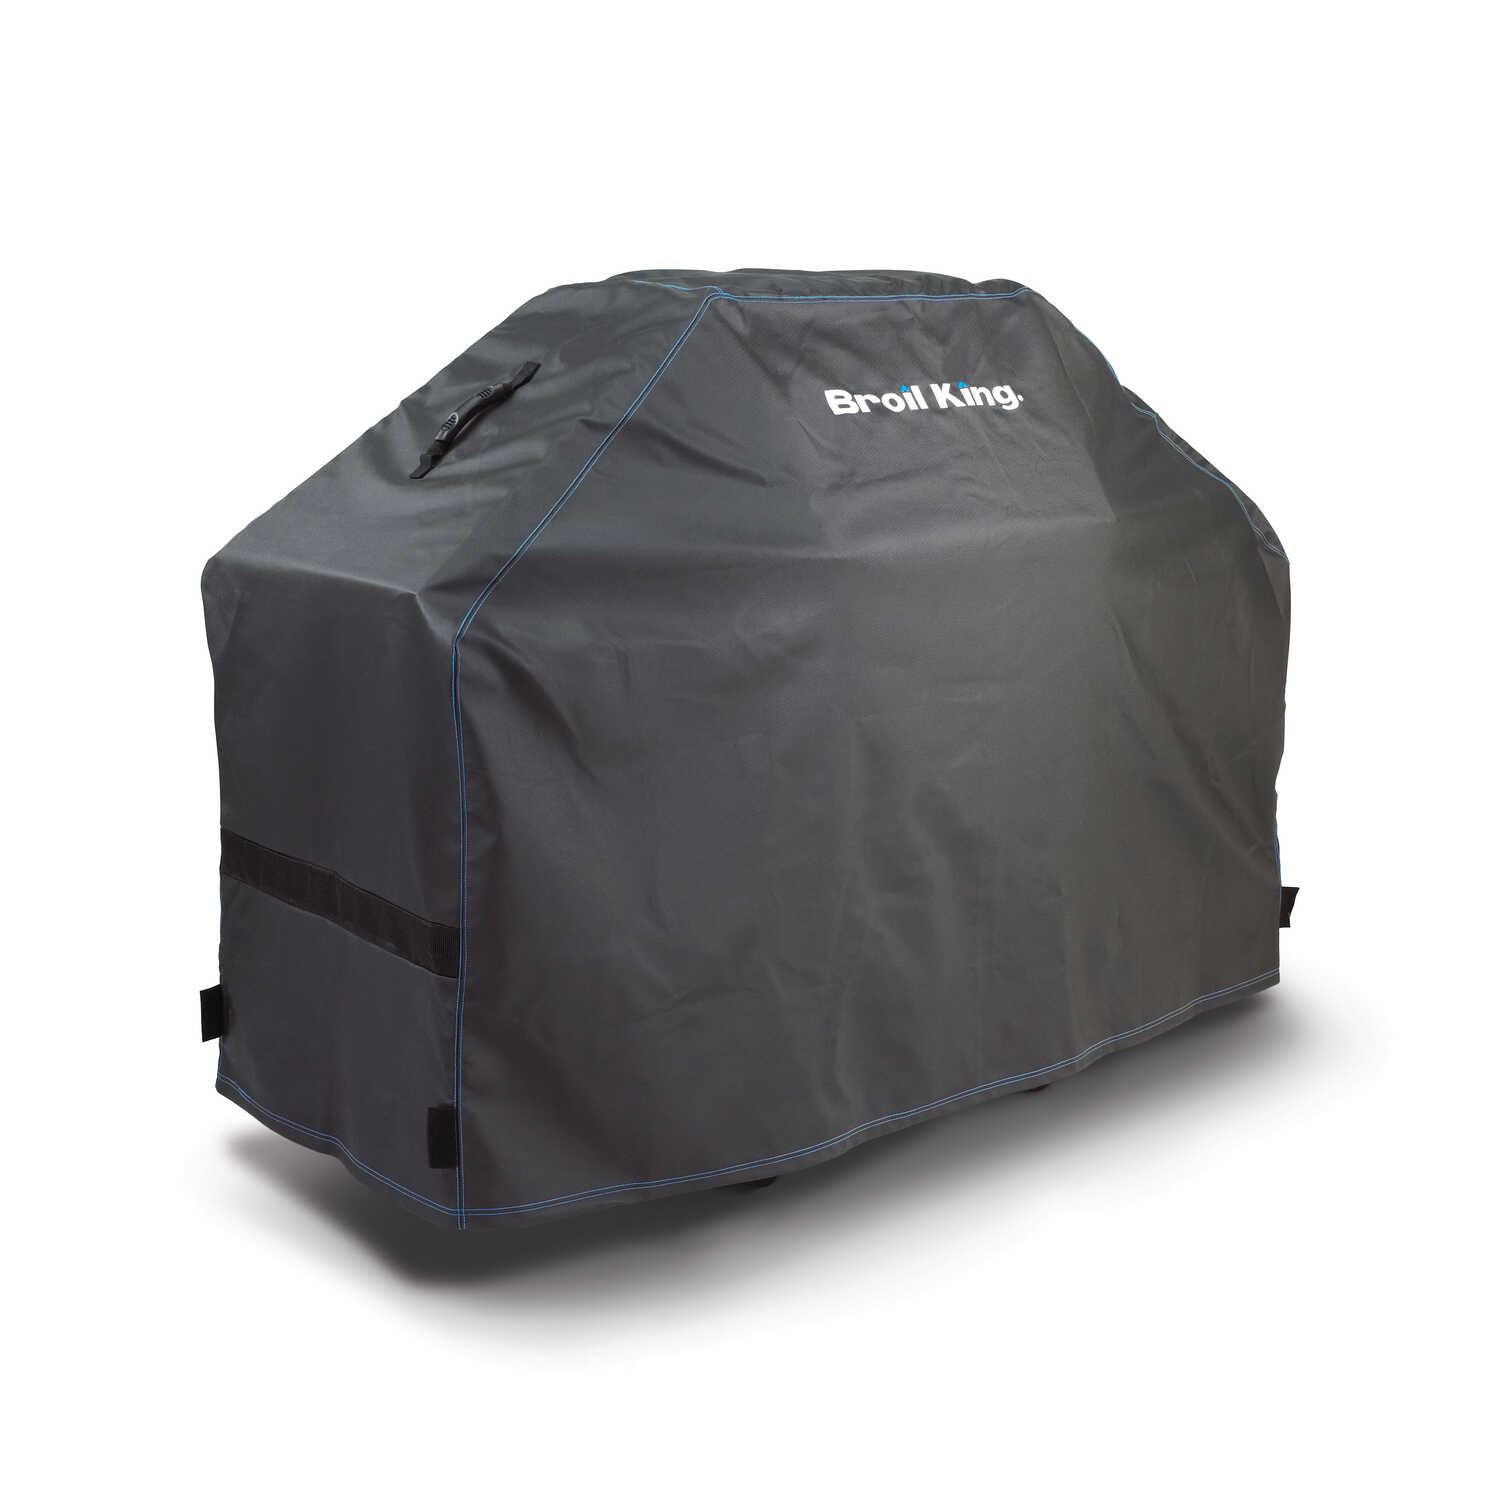 Broil King  Black  Grill Cover  51 in. W x 24 in. D x 46 in. H For Baron 300 Series